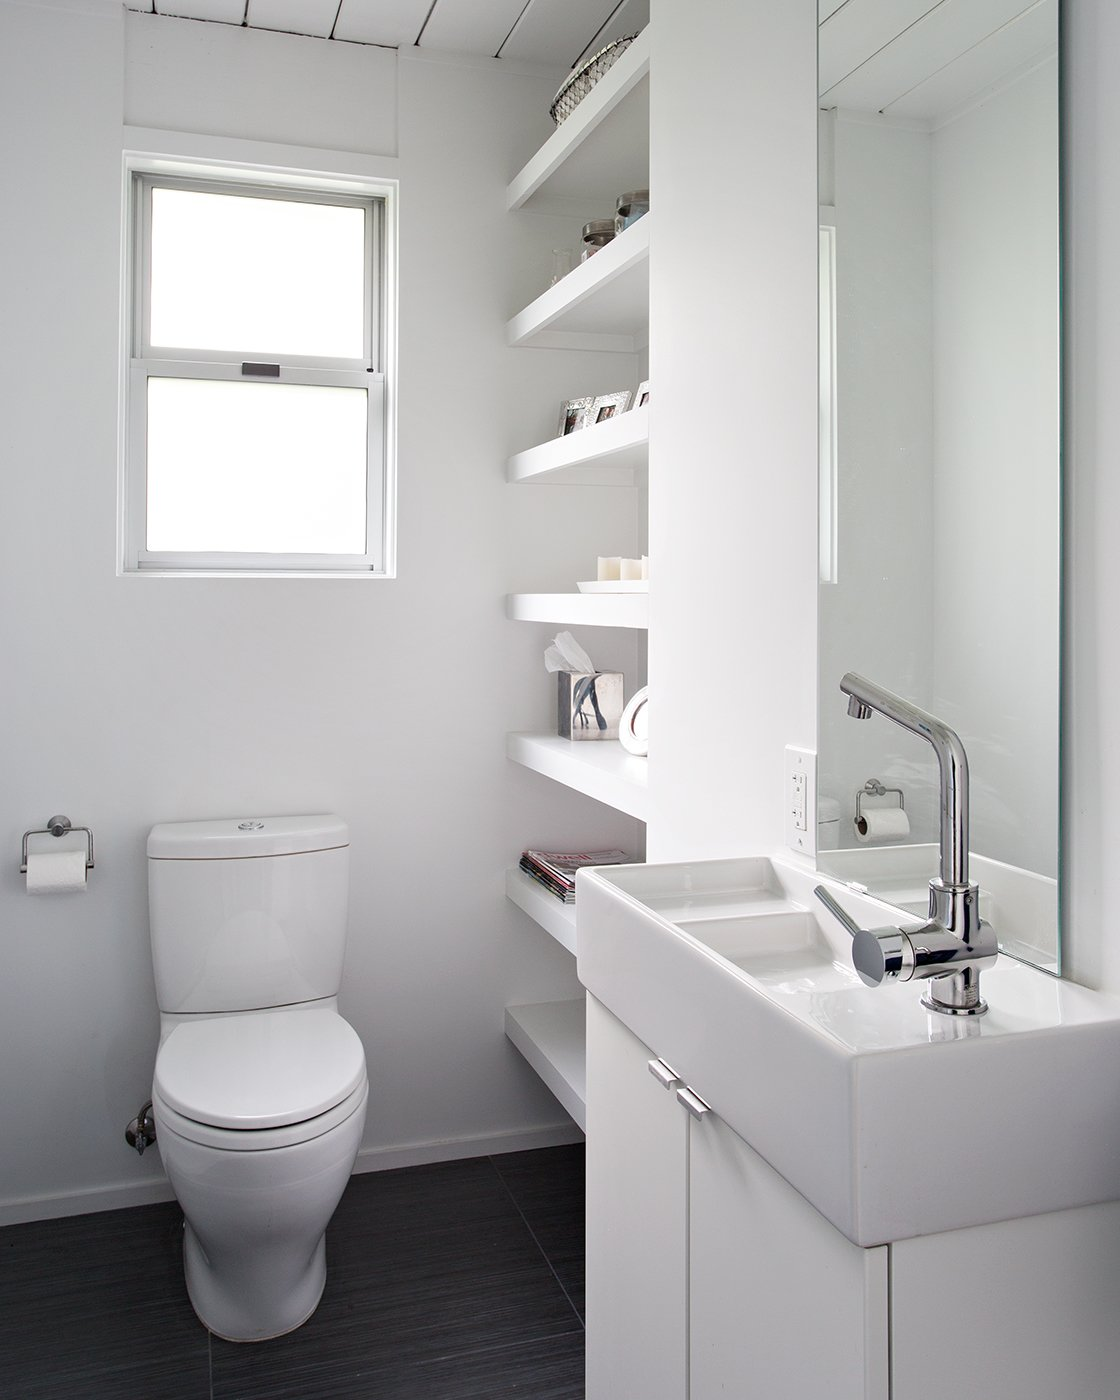 An all-white design brightens up the bathroom, making it feel serene and comfortable for the family. Photo by Mariko Reed.  Modern Eichler Renovations by Allie Weiss from Eichler Remodel in Burlingame, California